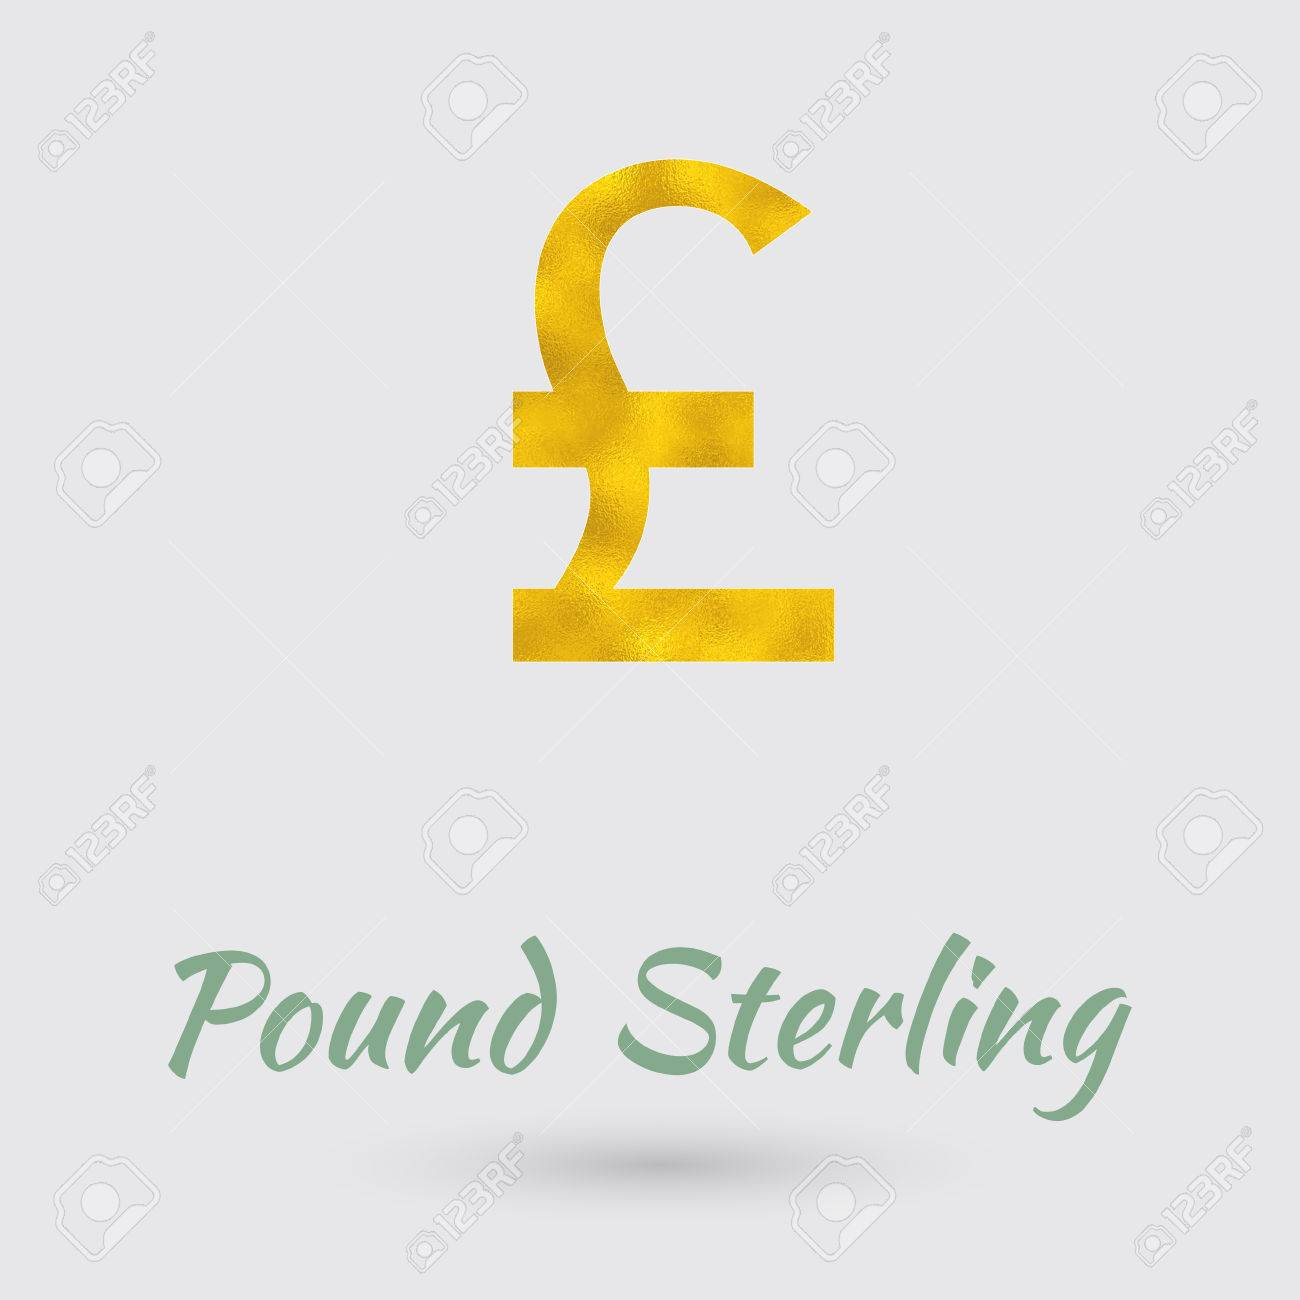 Symbol of the pound sterling currency with golden texture text symbol of the pound sterling currency with golden texture text with the uk currency name buycottarizona Image collections